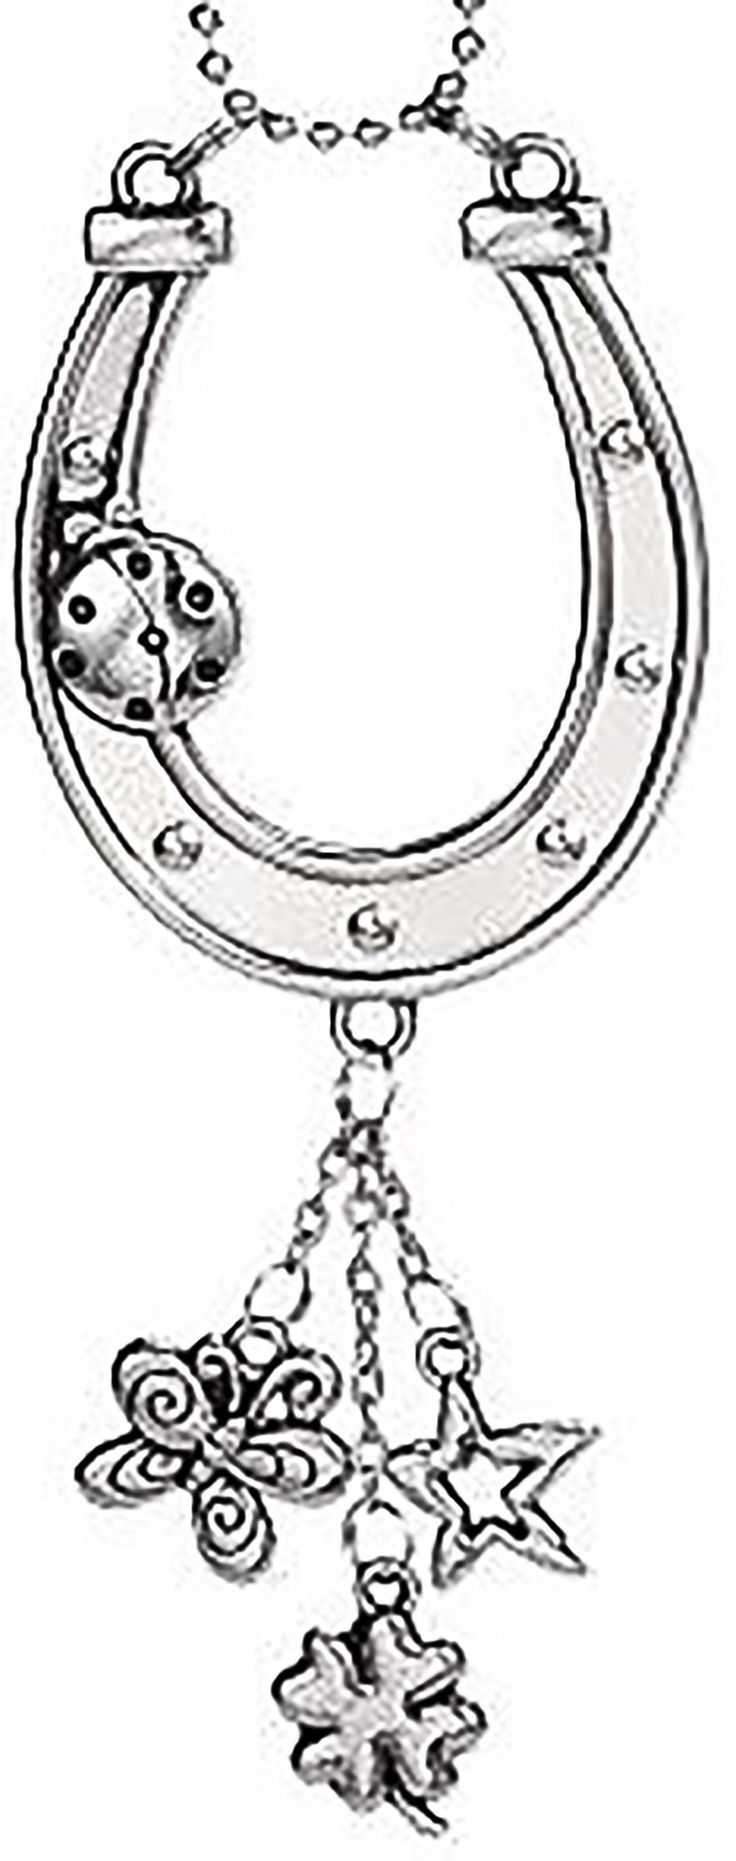 """Cool & Custom {7"""" Chain Hang} Single Unit of Rear View Mirror Hanging Ornament Decoration Made of Zinc Alloy w/ Cowboy Western Horseshoe & Cute Ladybug w/ Charms Design [Focus Silver Colored]"""